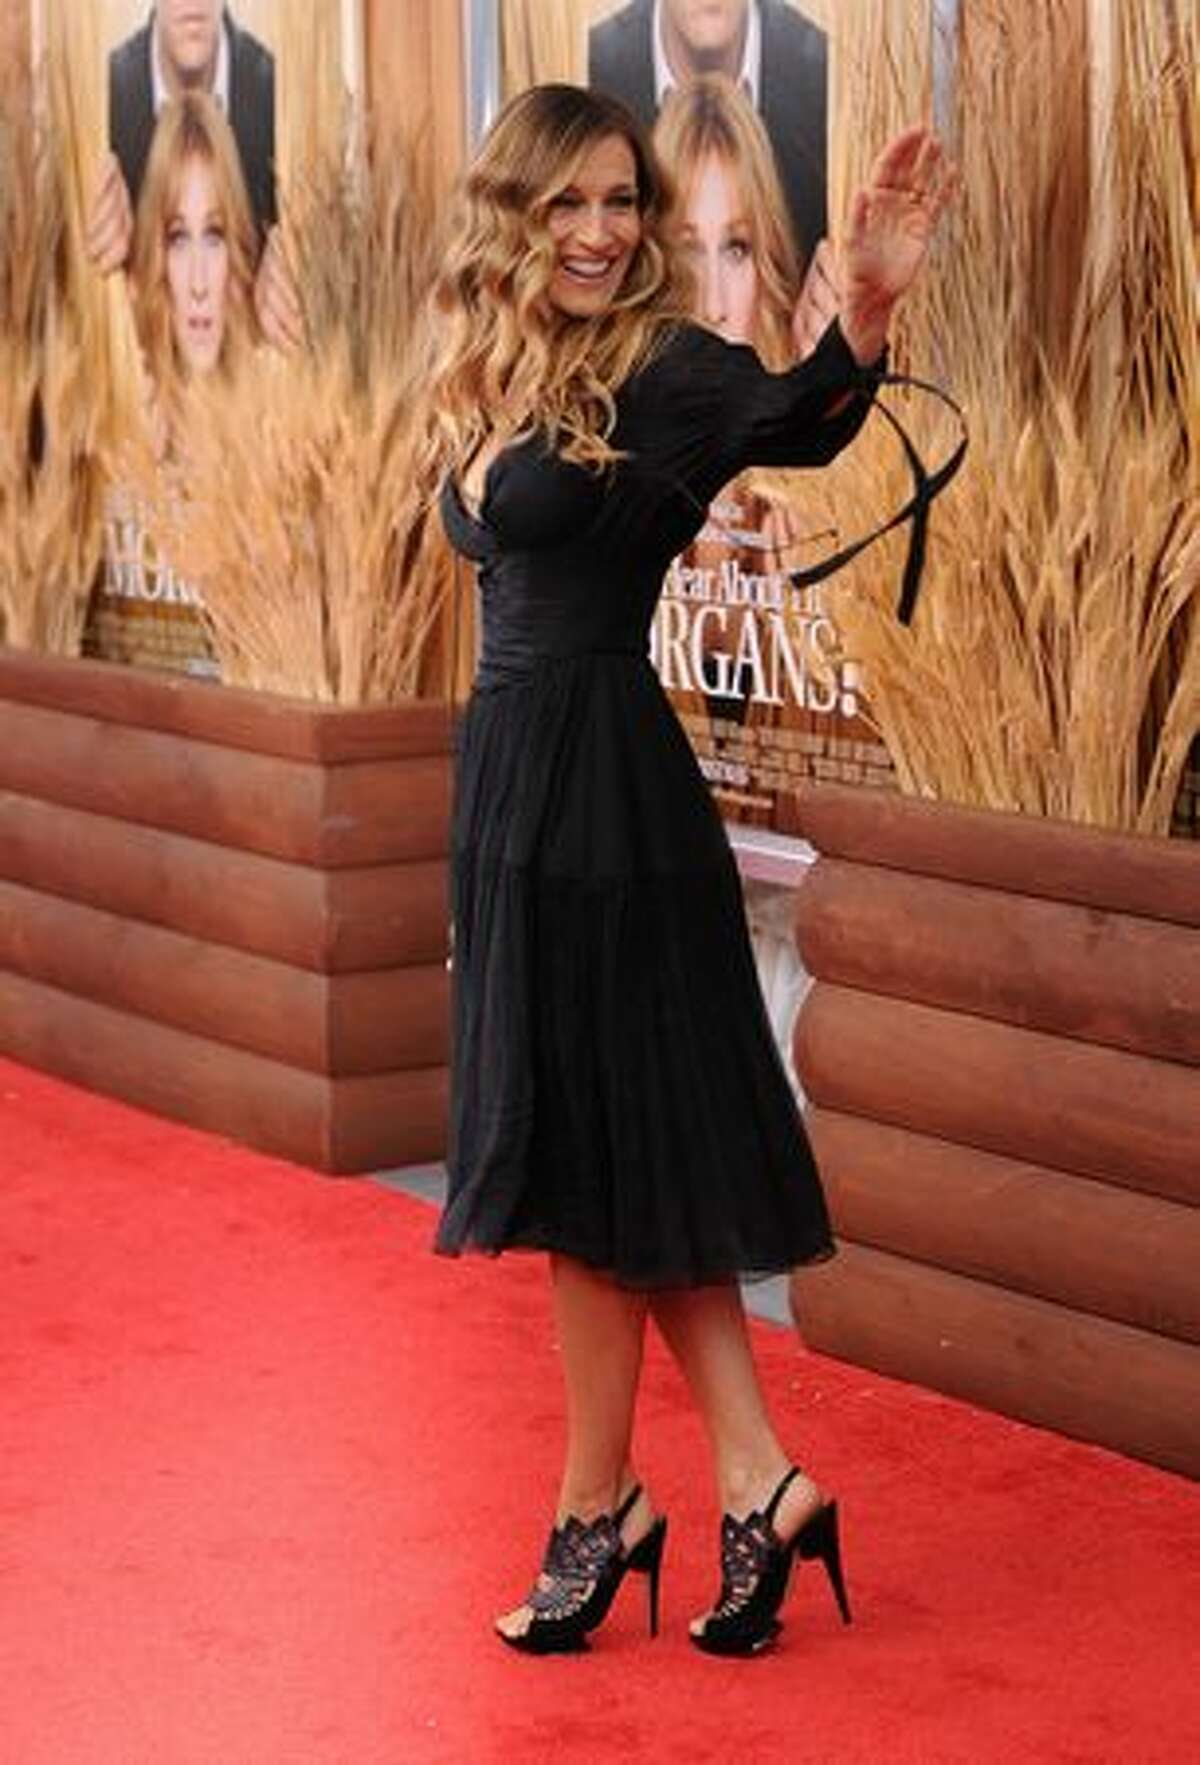 Actress Sarah Jessica Parker attends the premiere of